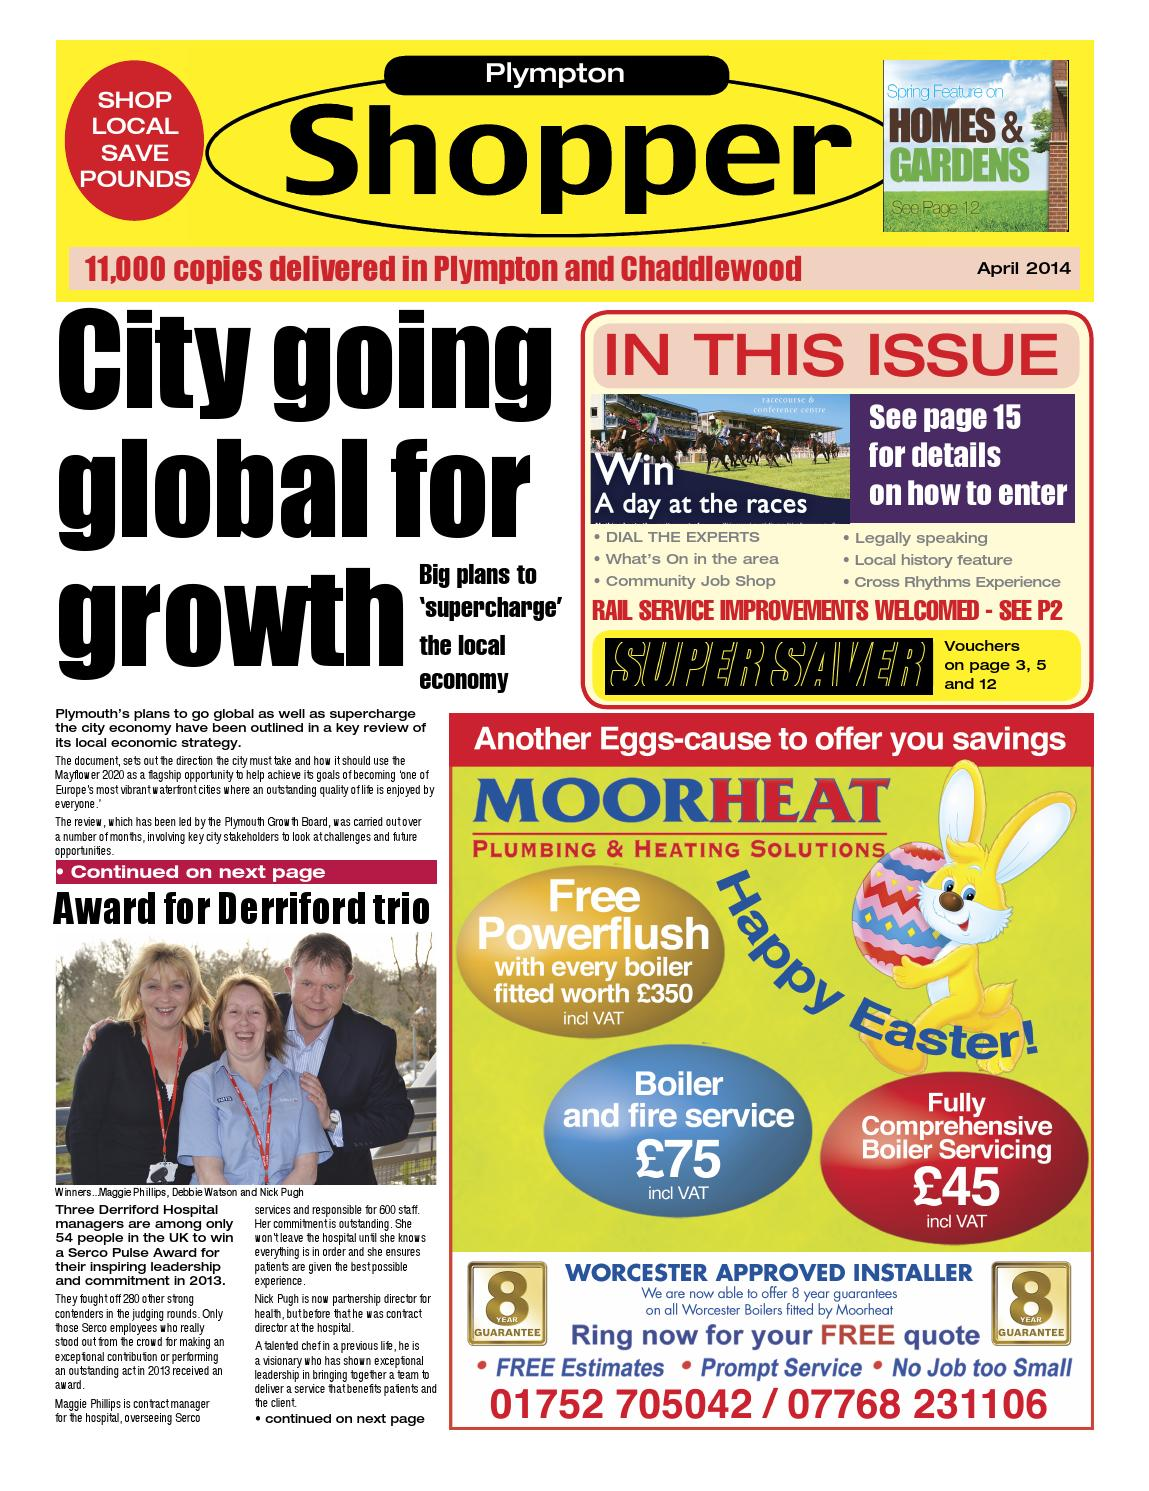 The Plymouth Shopper April 2014 By Cornerstone Vision